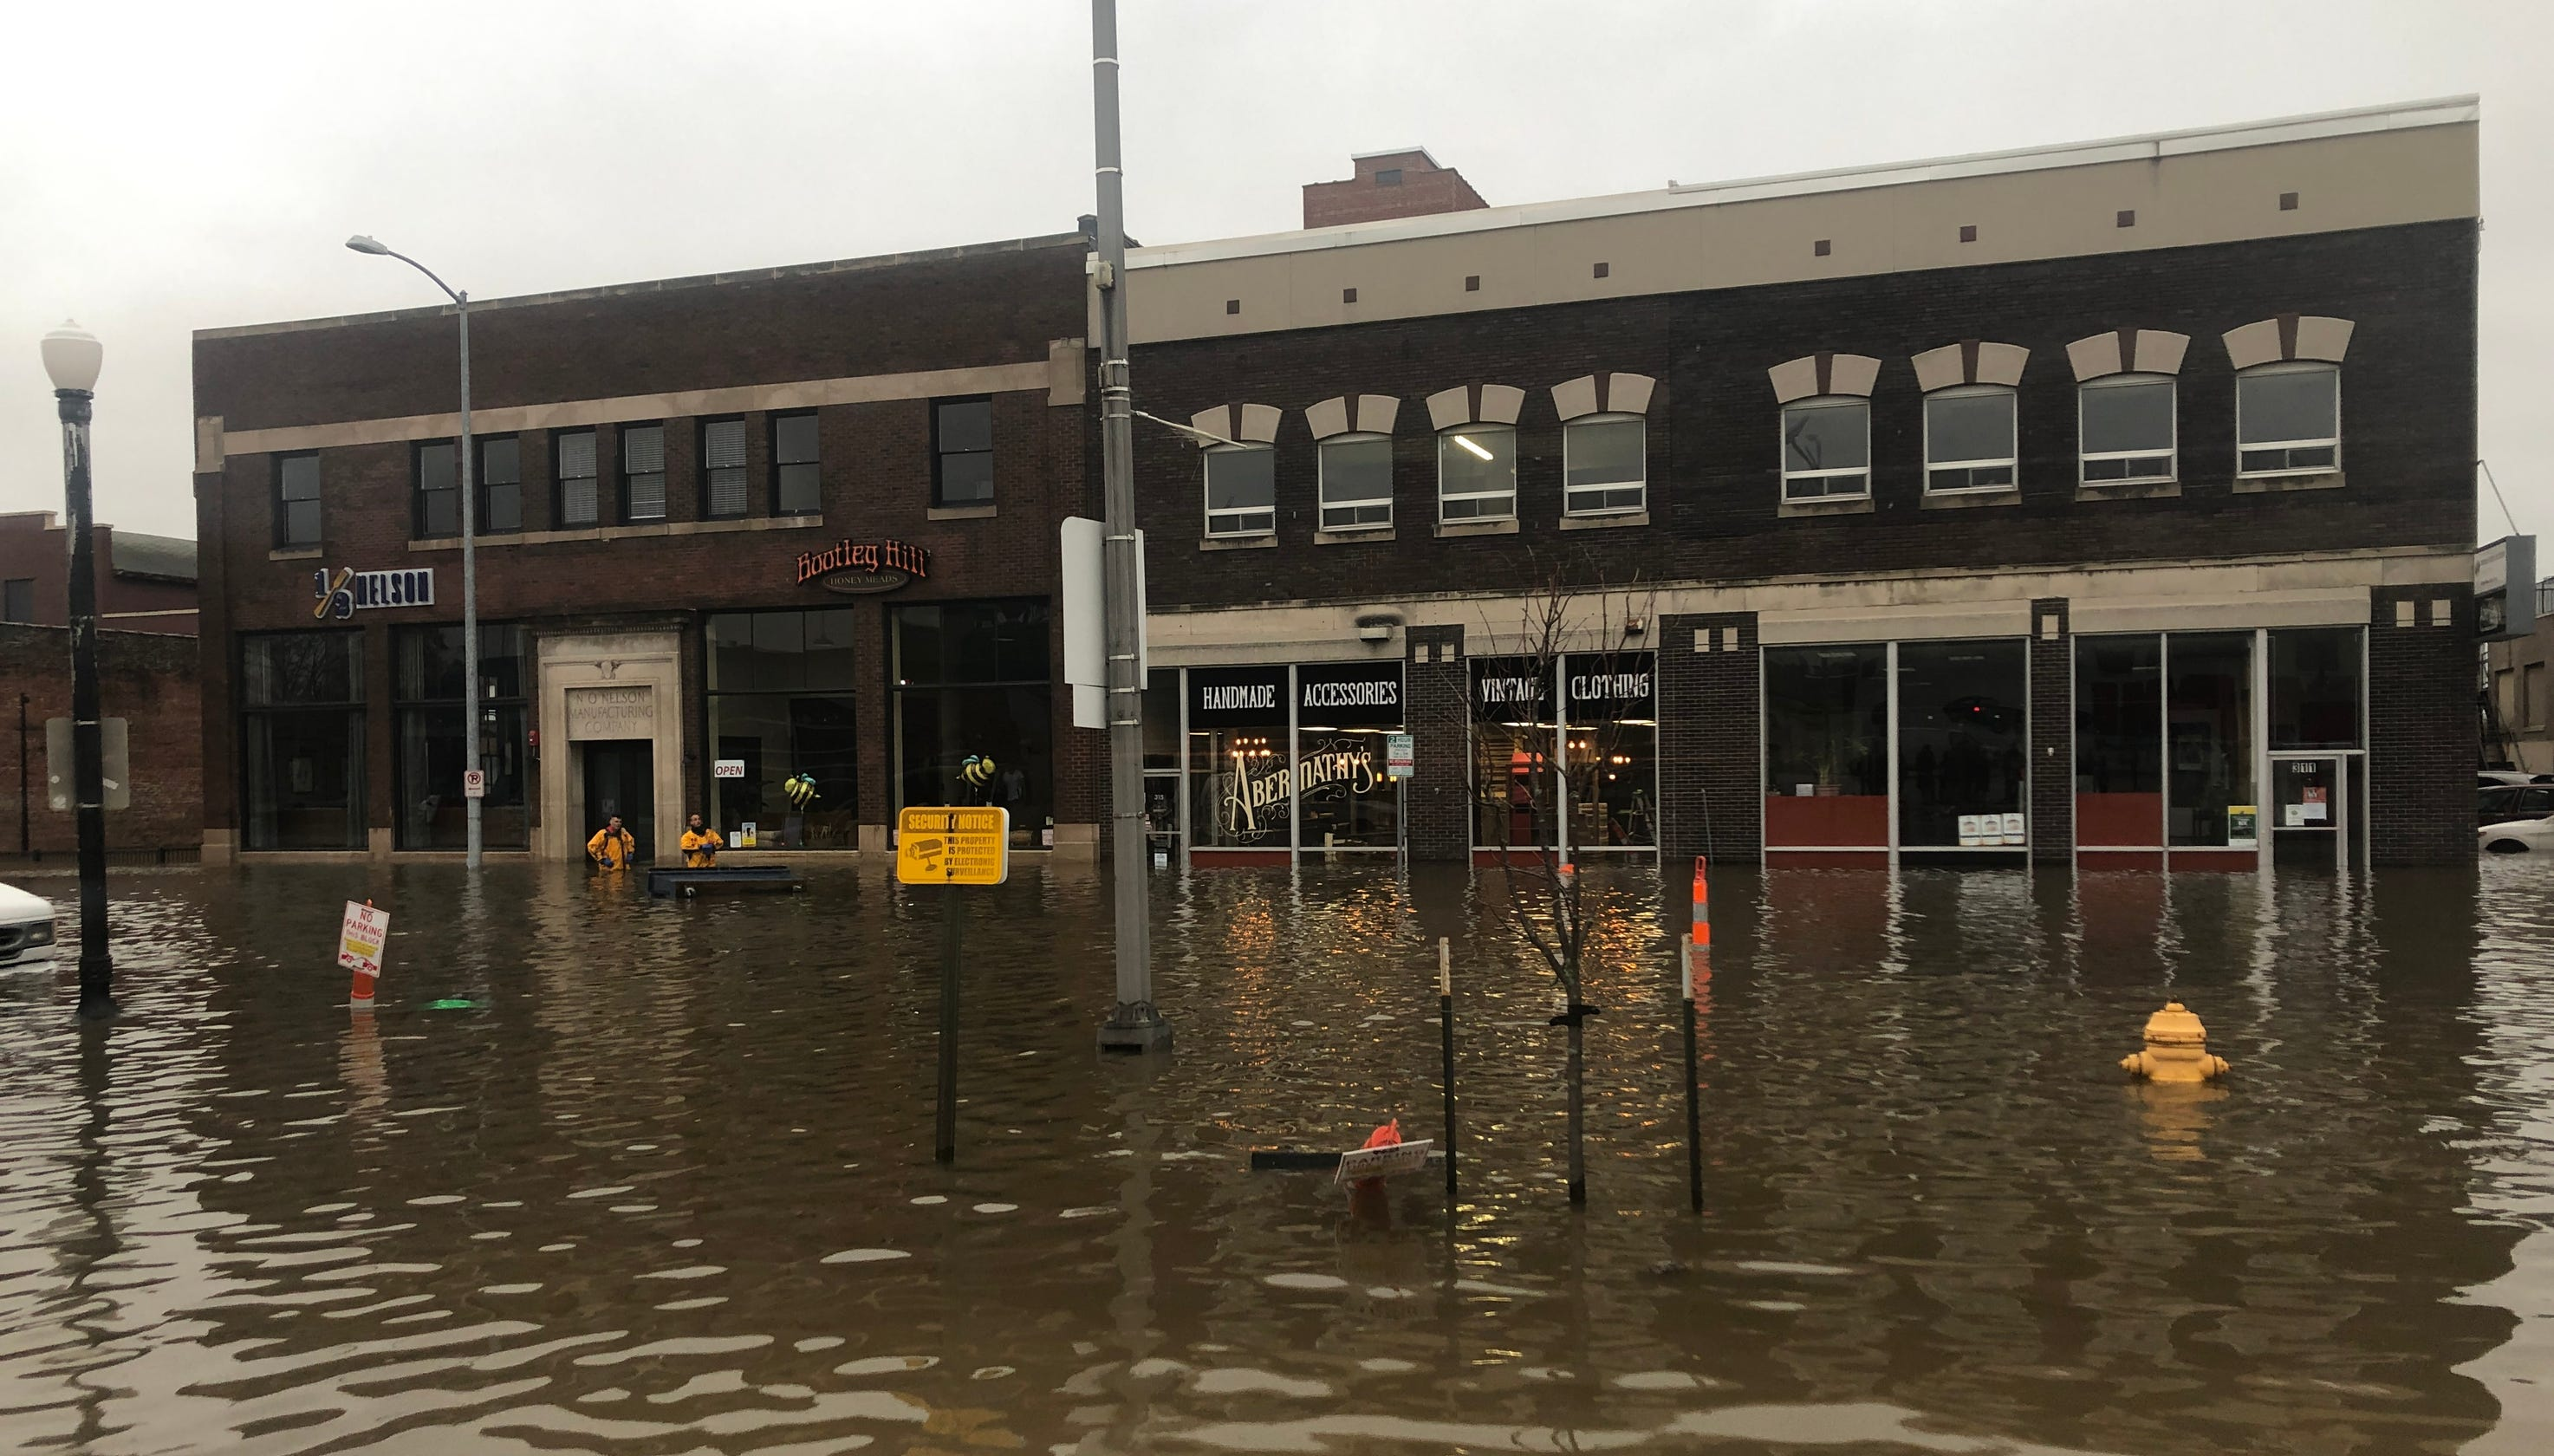 Davenport flooding: A scramble to protect businesses downtown